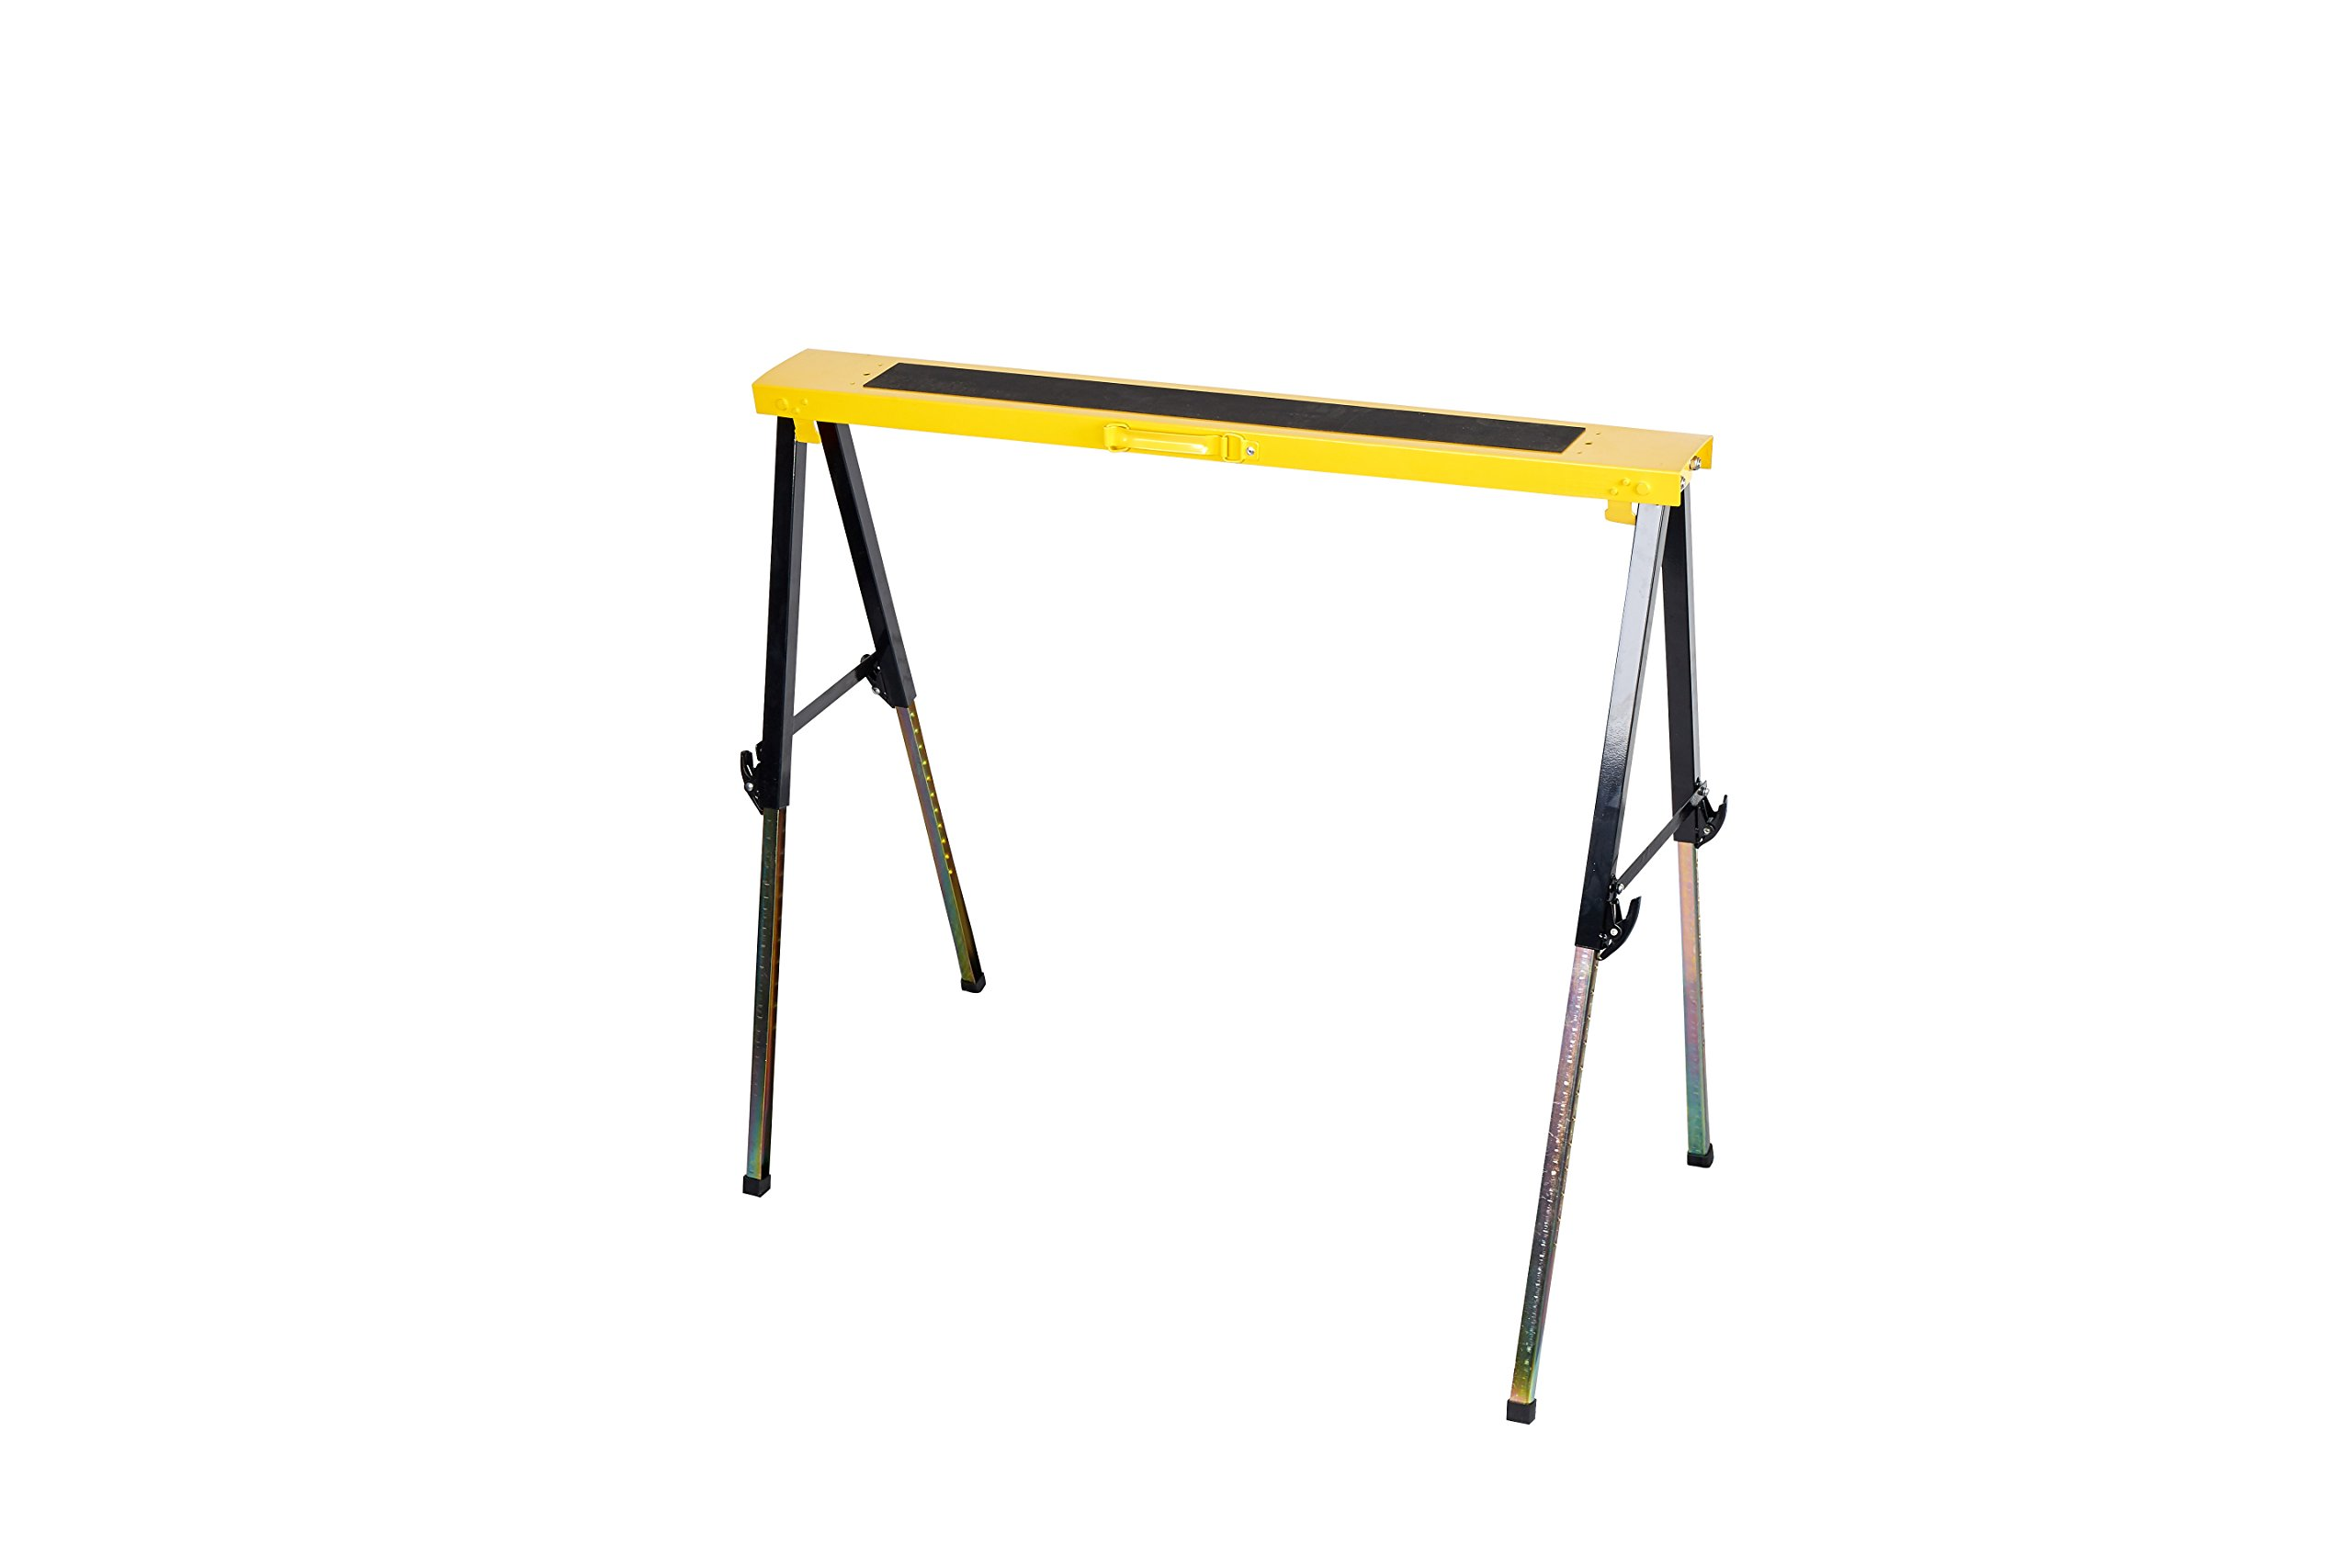 Single Pack Steel Multi Purpose Folding Legs and 12 Position Height Adjustable Sawhorse Brackets Capacity 250LBS by CASTOOL (Image #1)